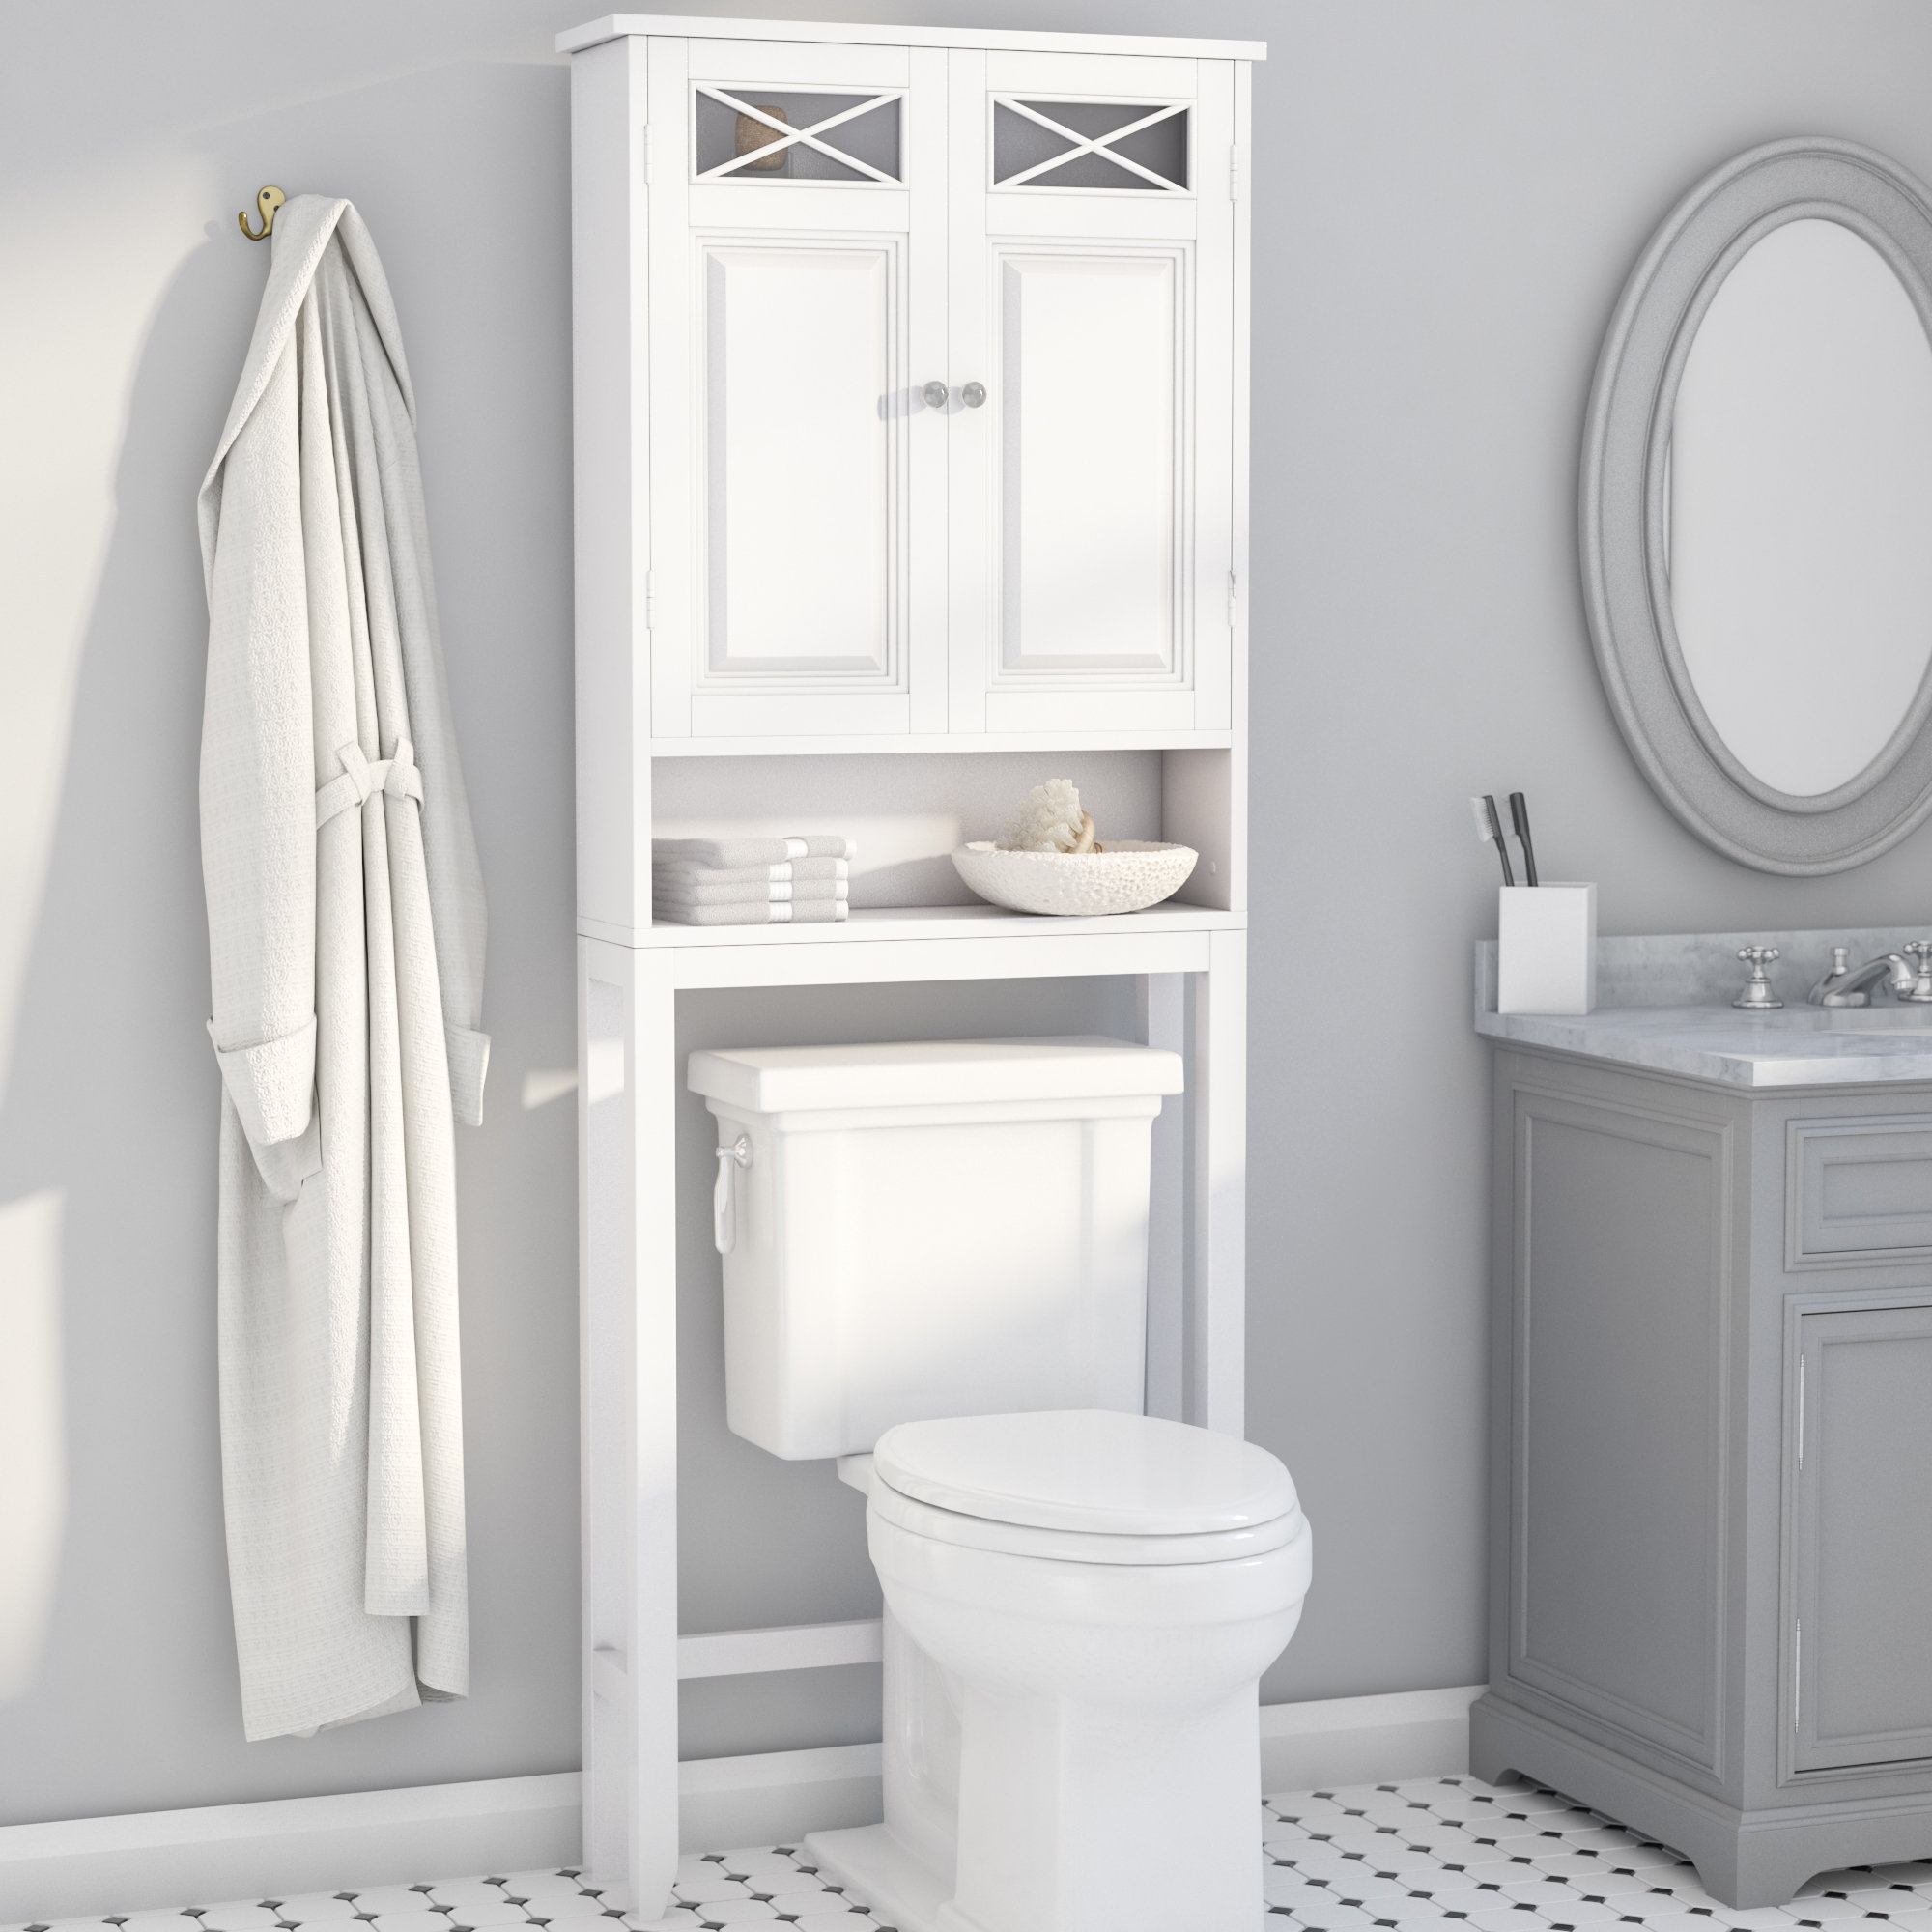 Roberts 25 W X 68 H Over The Toilet Storage in size 2000 X 2000